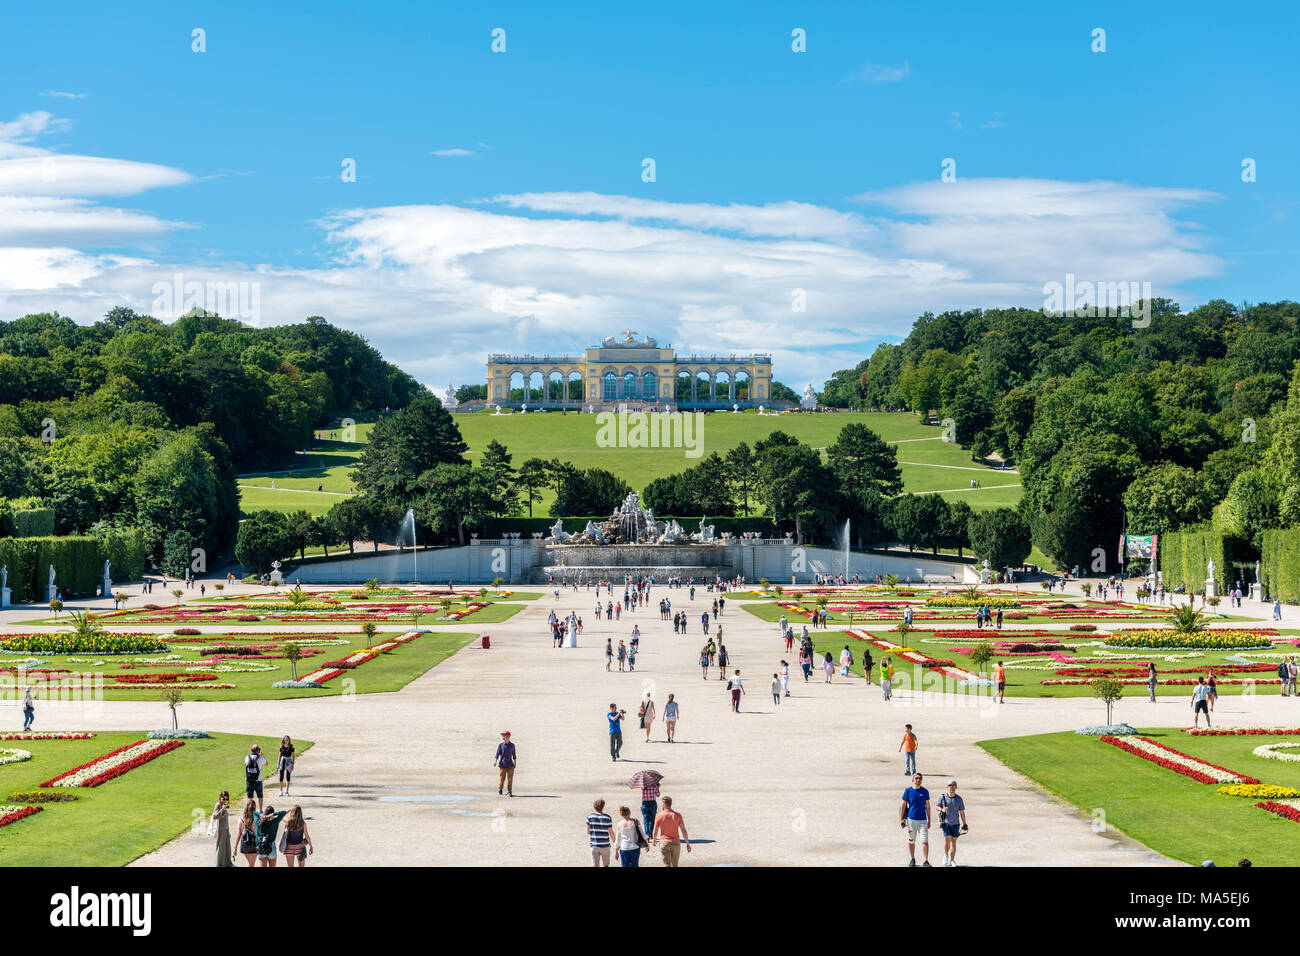 Vienna, Austria, Europe. The The Neptune Fountain and the Gloriette in the gardens of Schönbrunn Palace. - Stock Image